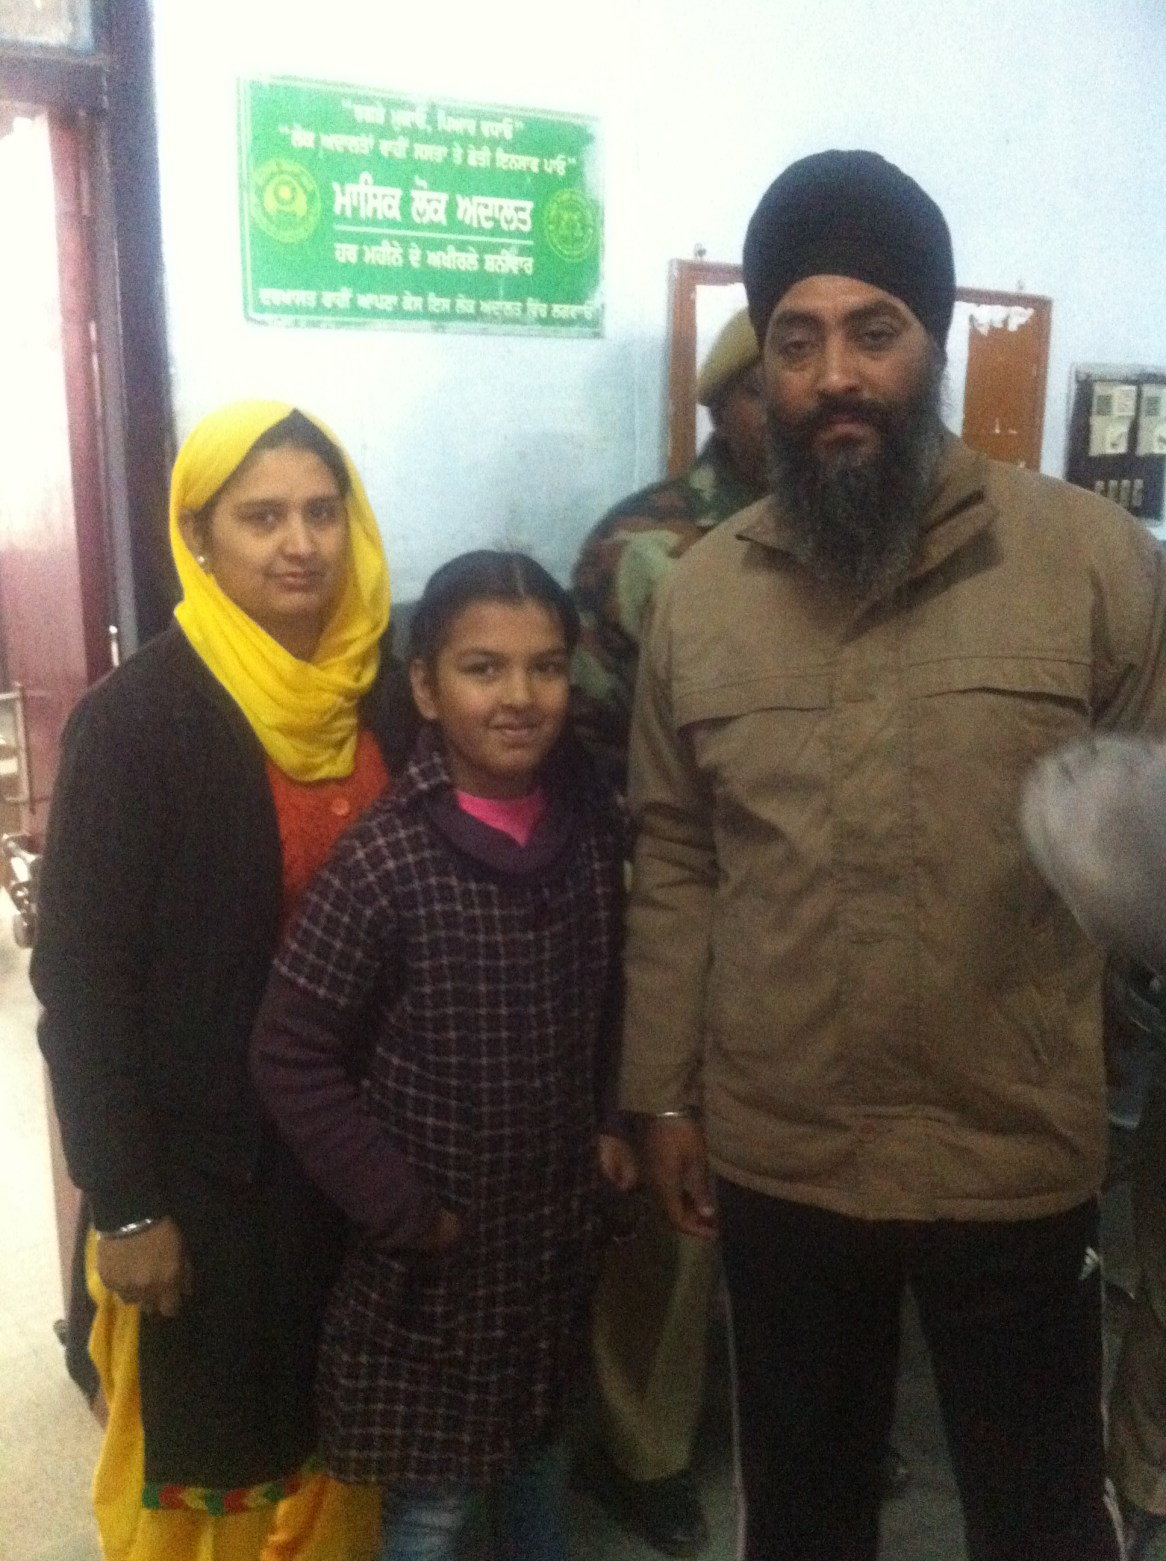 Harminder-Singh-with-his-wife-Rajwinder-Kaur-and-Daughter-Sidak-kaur